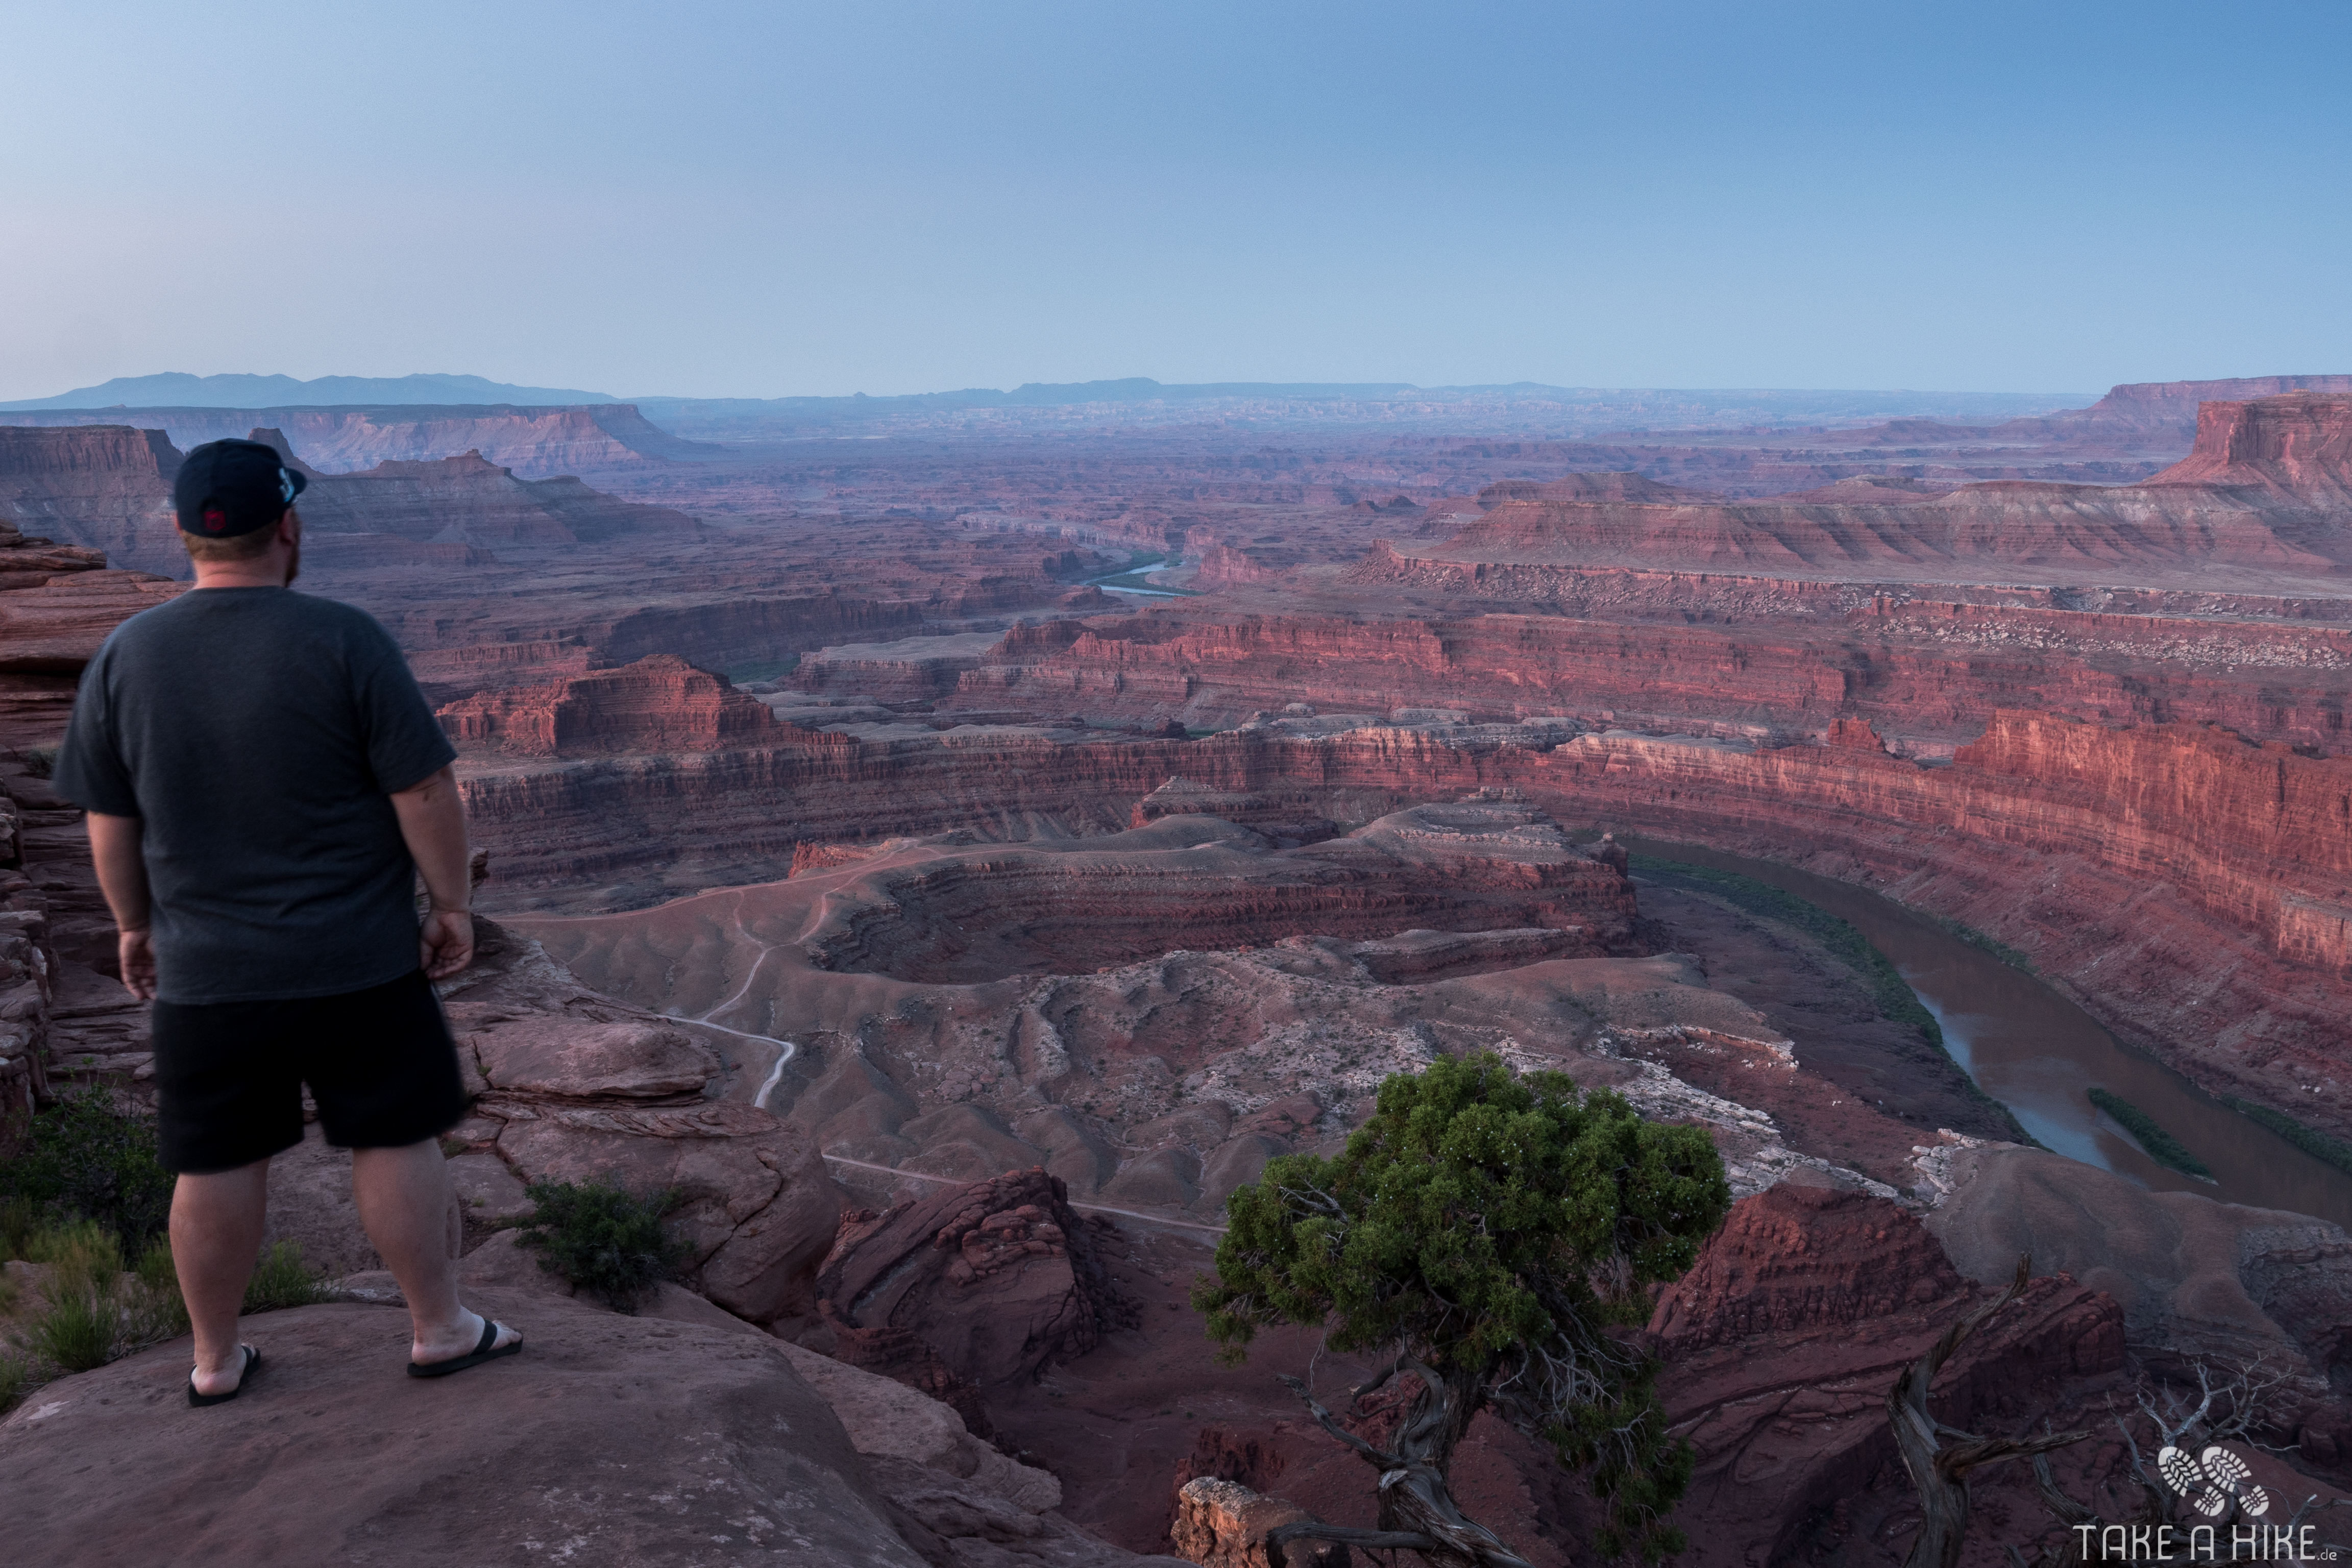 Fotoparade 01/2018: Sonnenaufgang am Dead Horse Point